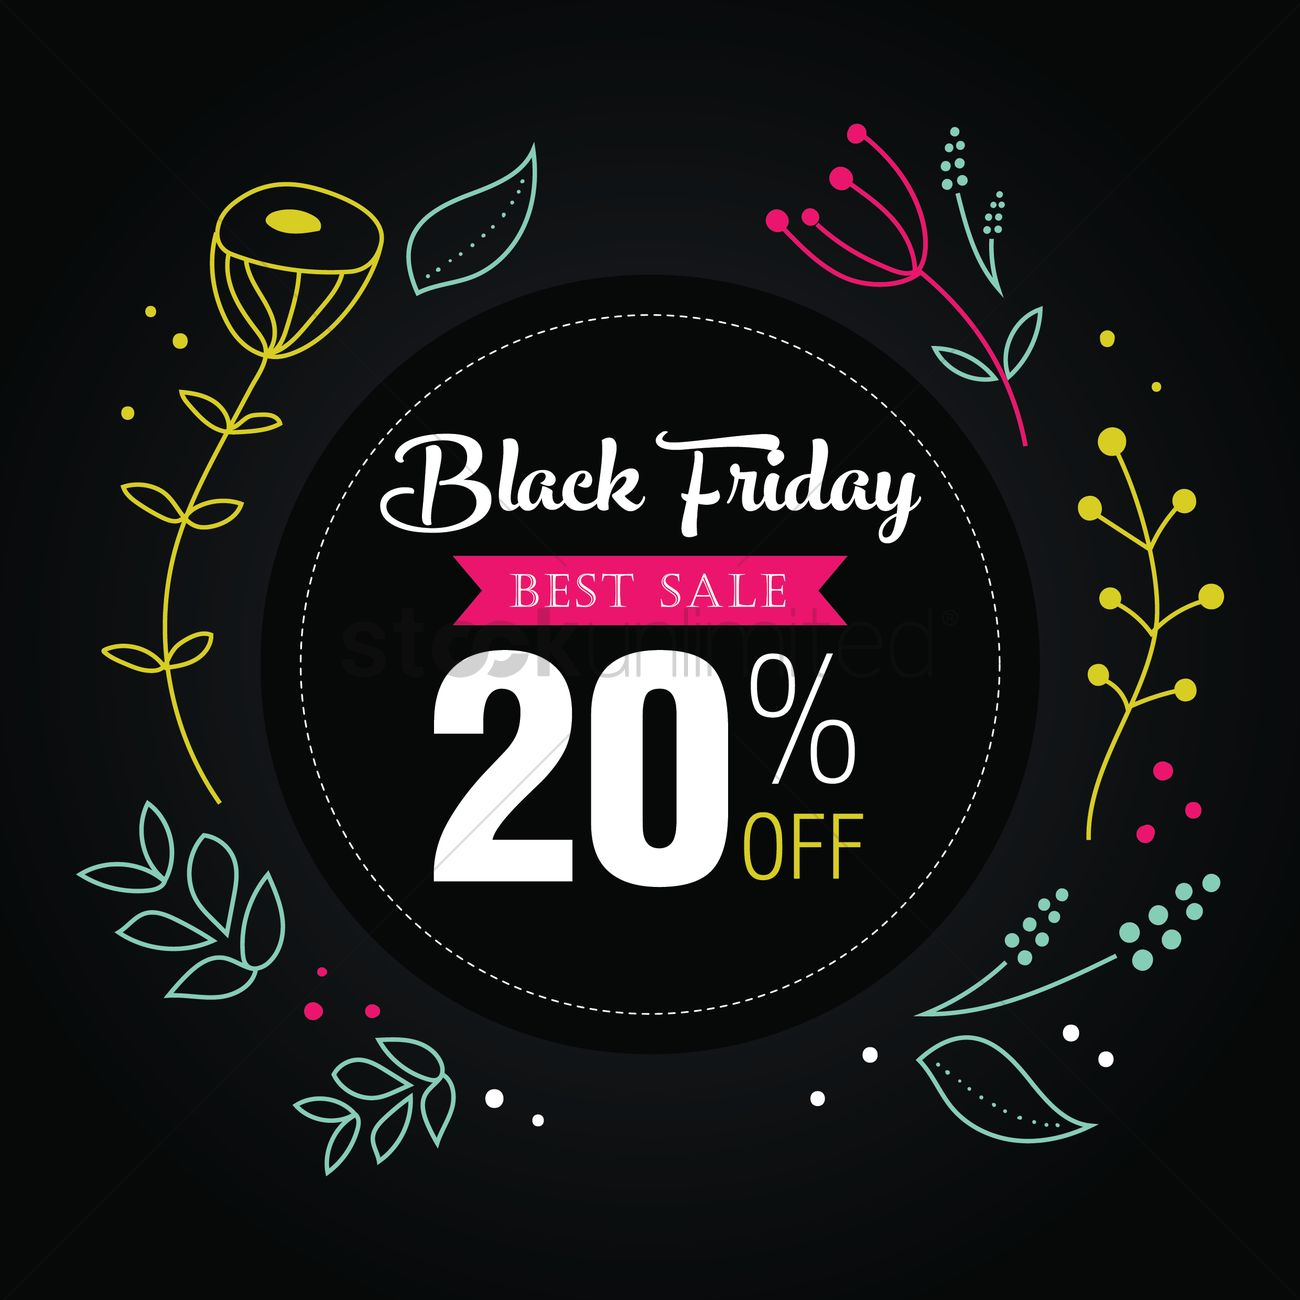 Black friday sale wallpaper Vector Image   1583250 StockUnlimited 1300x1300